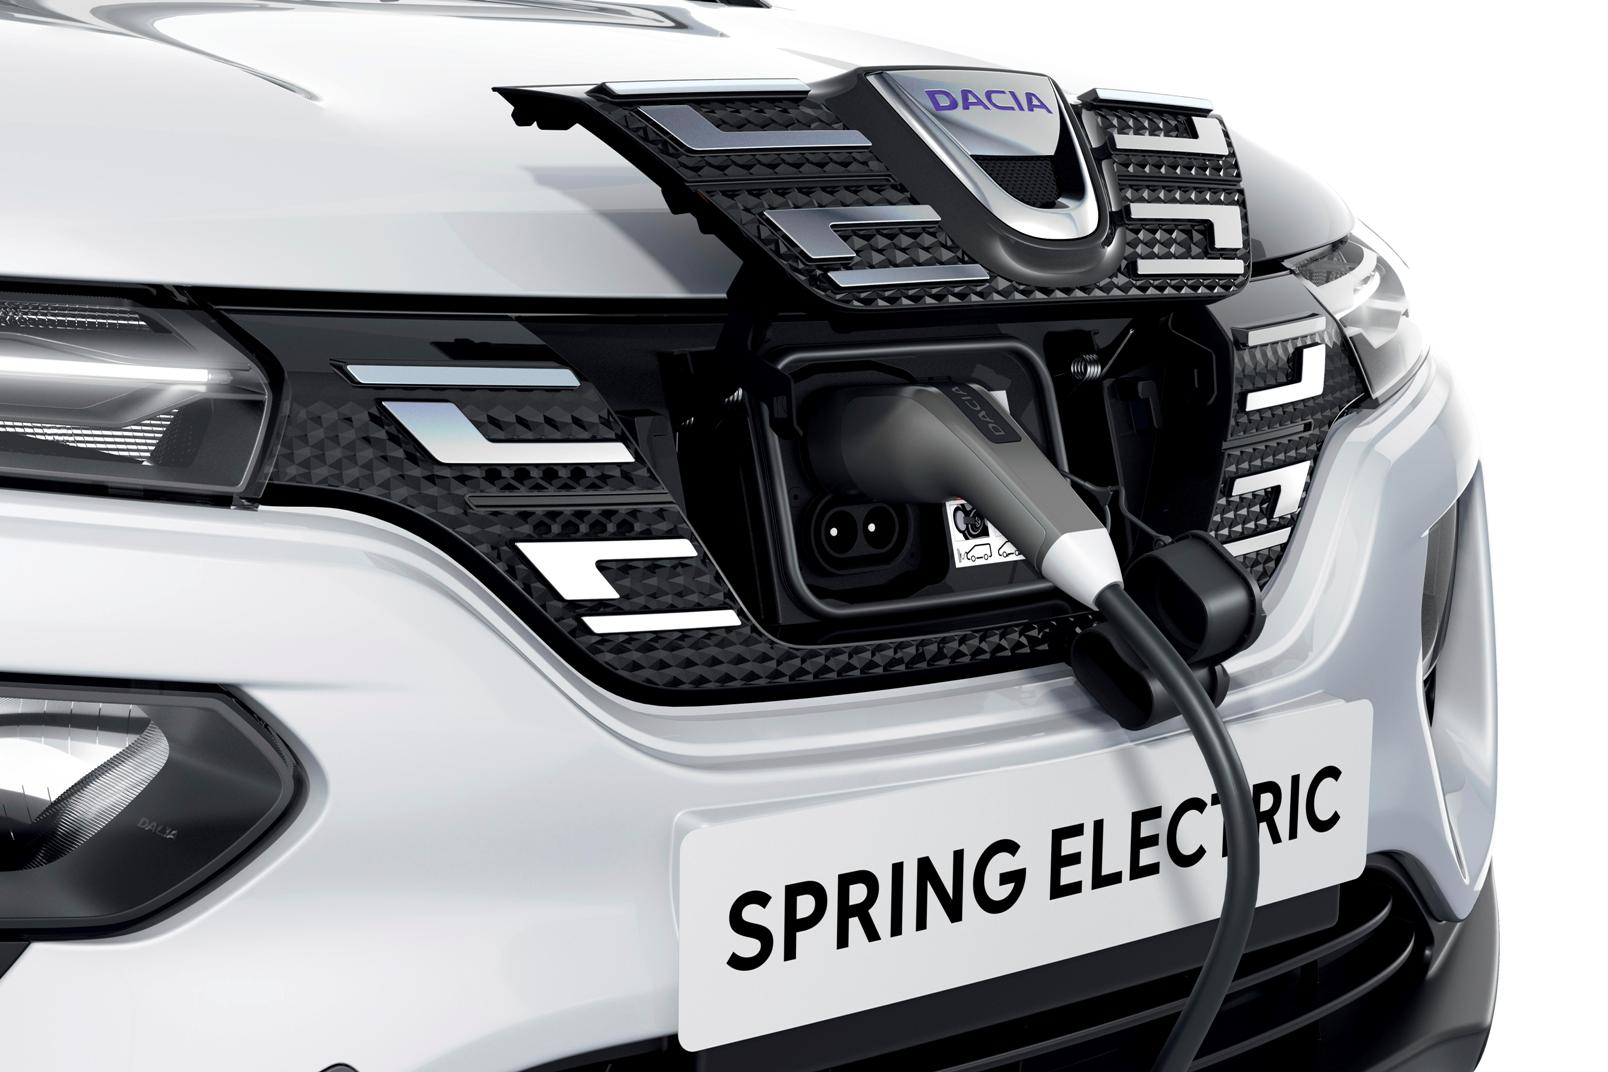 Dacia Spring Electric 2021 (10)